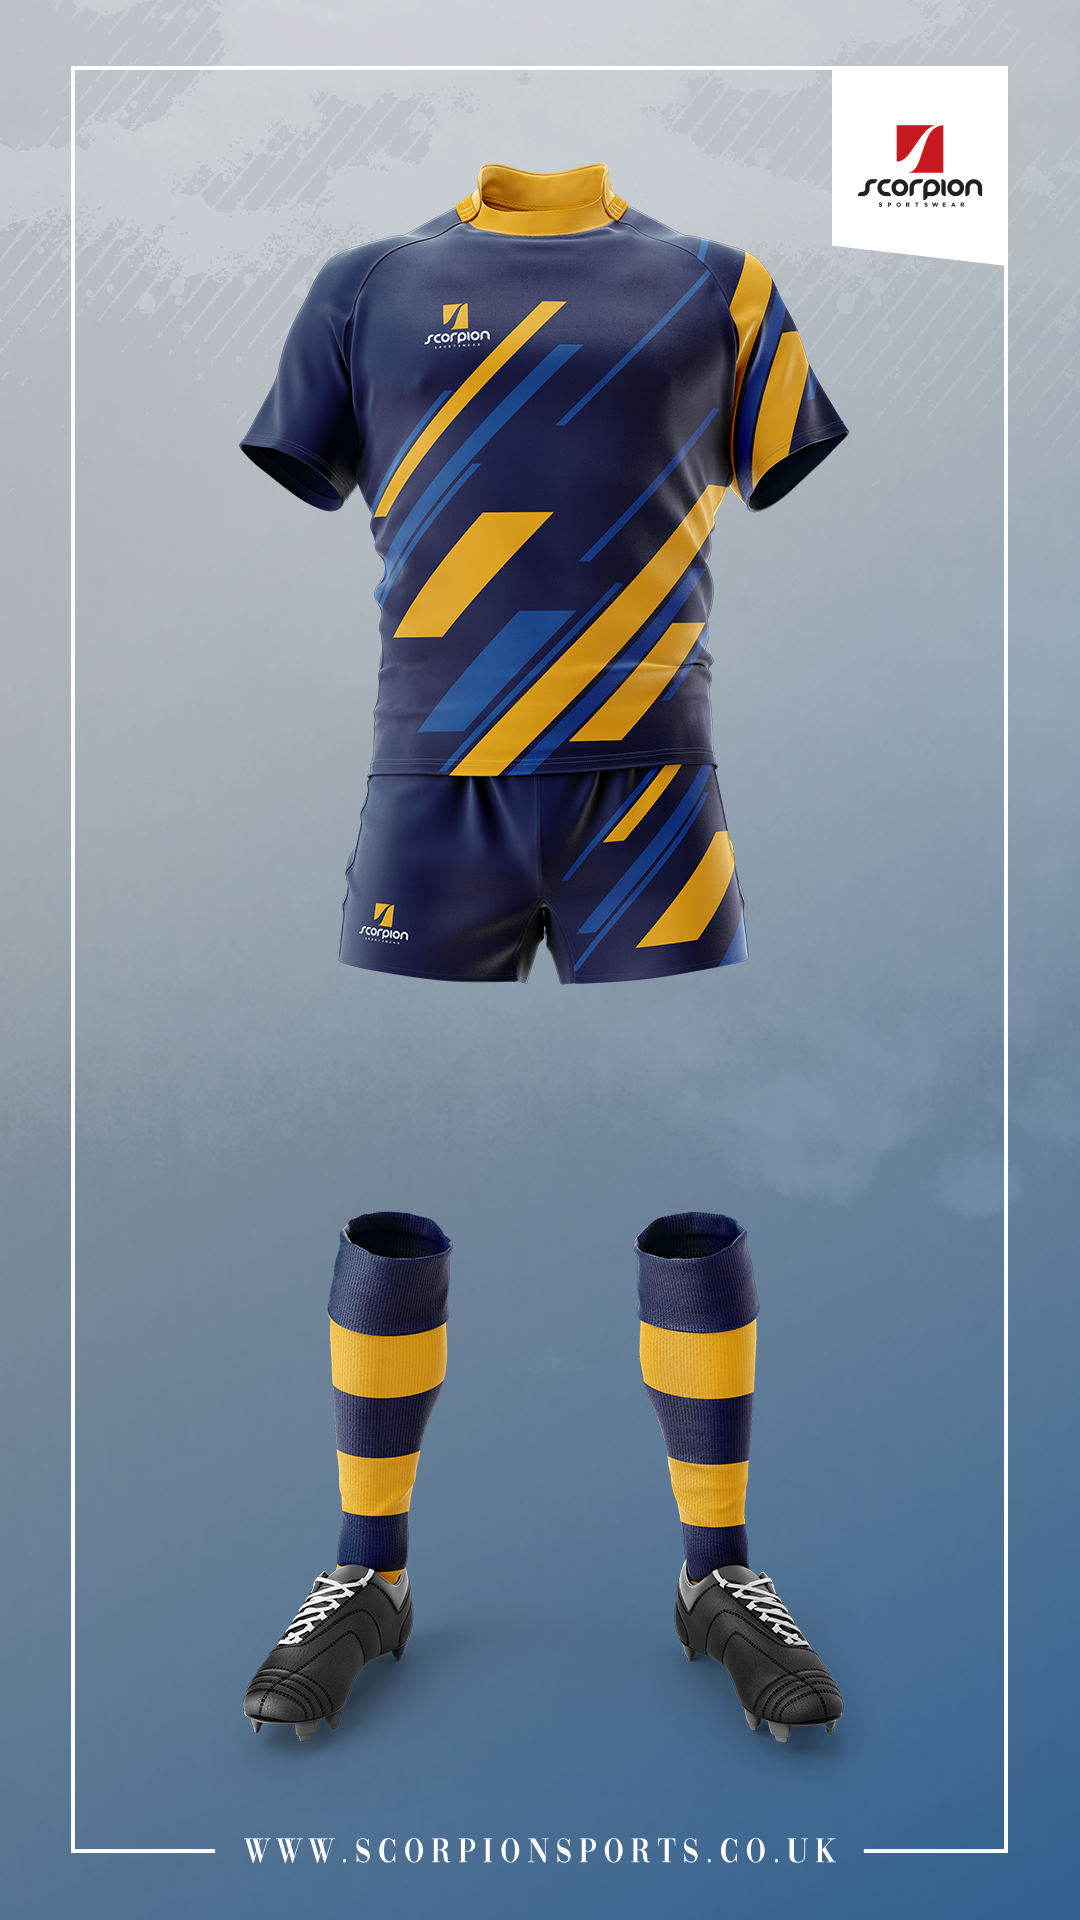 Scorpion Sports Providing Bespoke Sportswear For Various Sports Choose Any Shirt Design And Use Any Colour Scheme T Rugby Design Sport Outfits Rugby Uniform